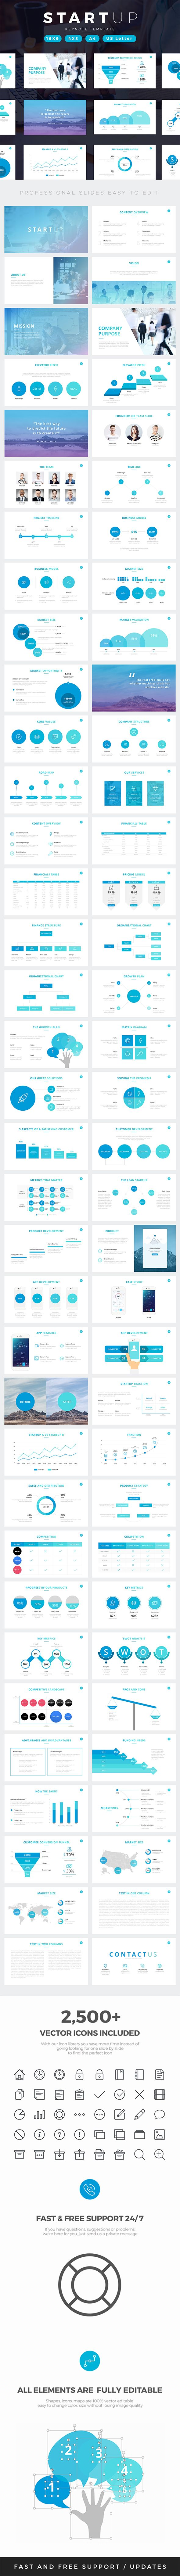 Startup Company Pitch Deck Keynote Template - #Business #Keynote #Templates Download here: https://graphicriver.net/item/startup-company-pitch-deck-keynote-template/19321030?ref=alena994